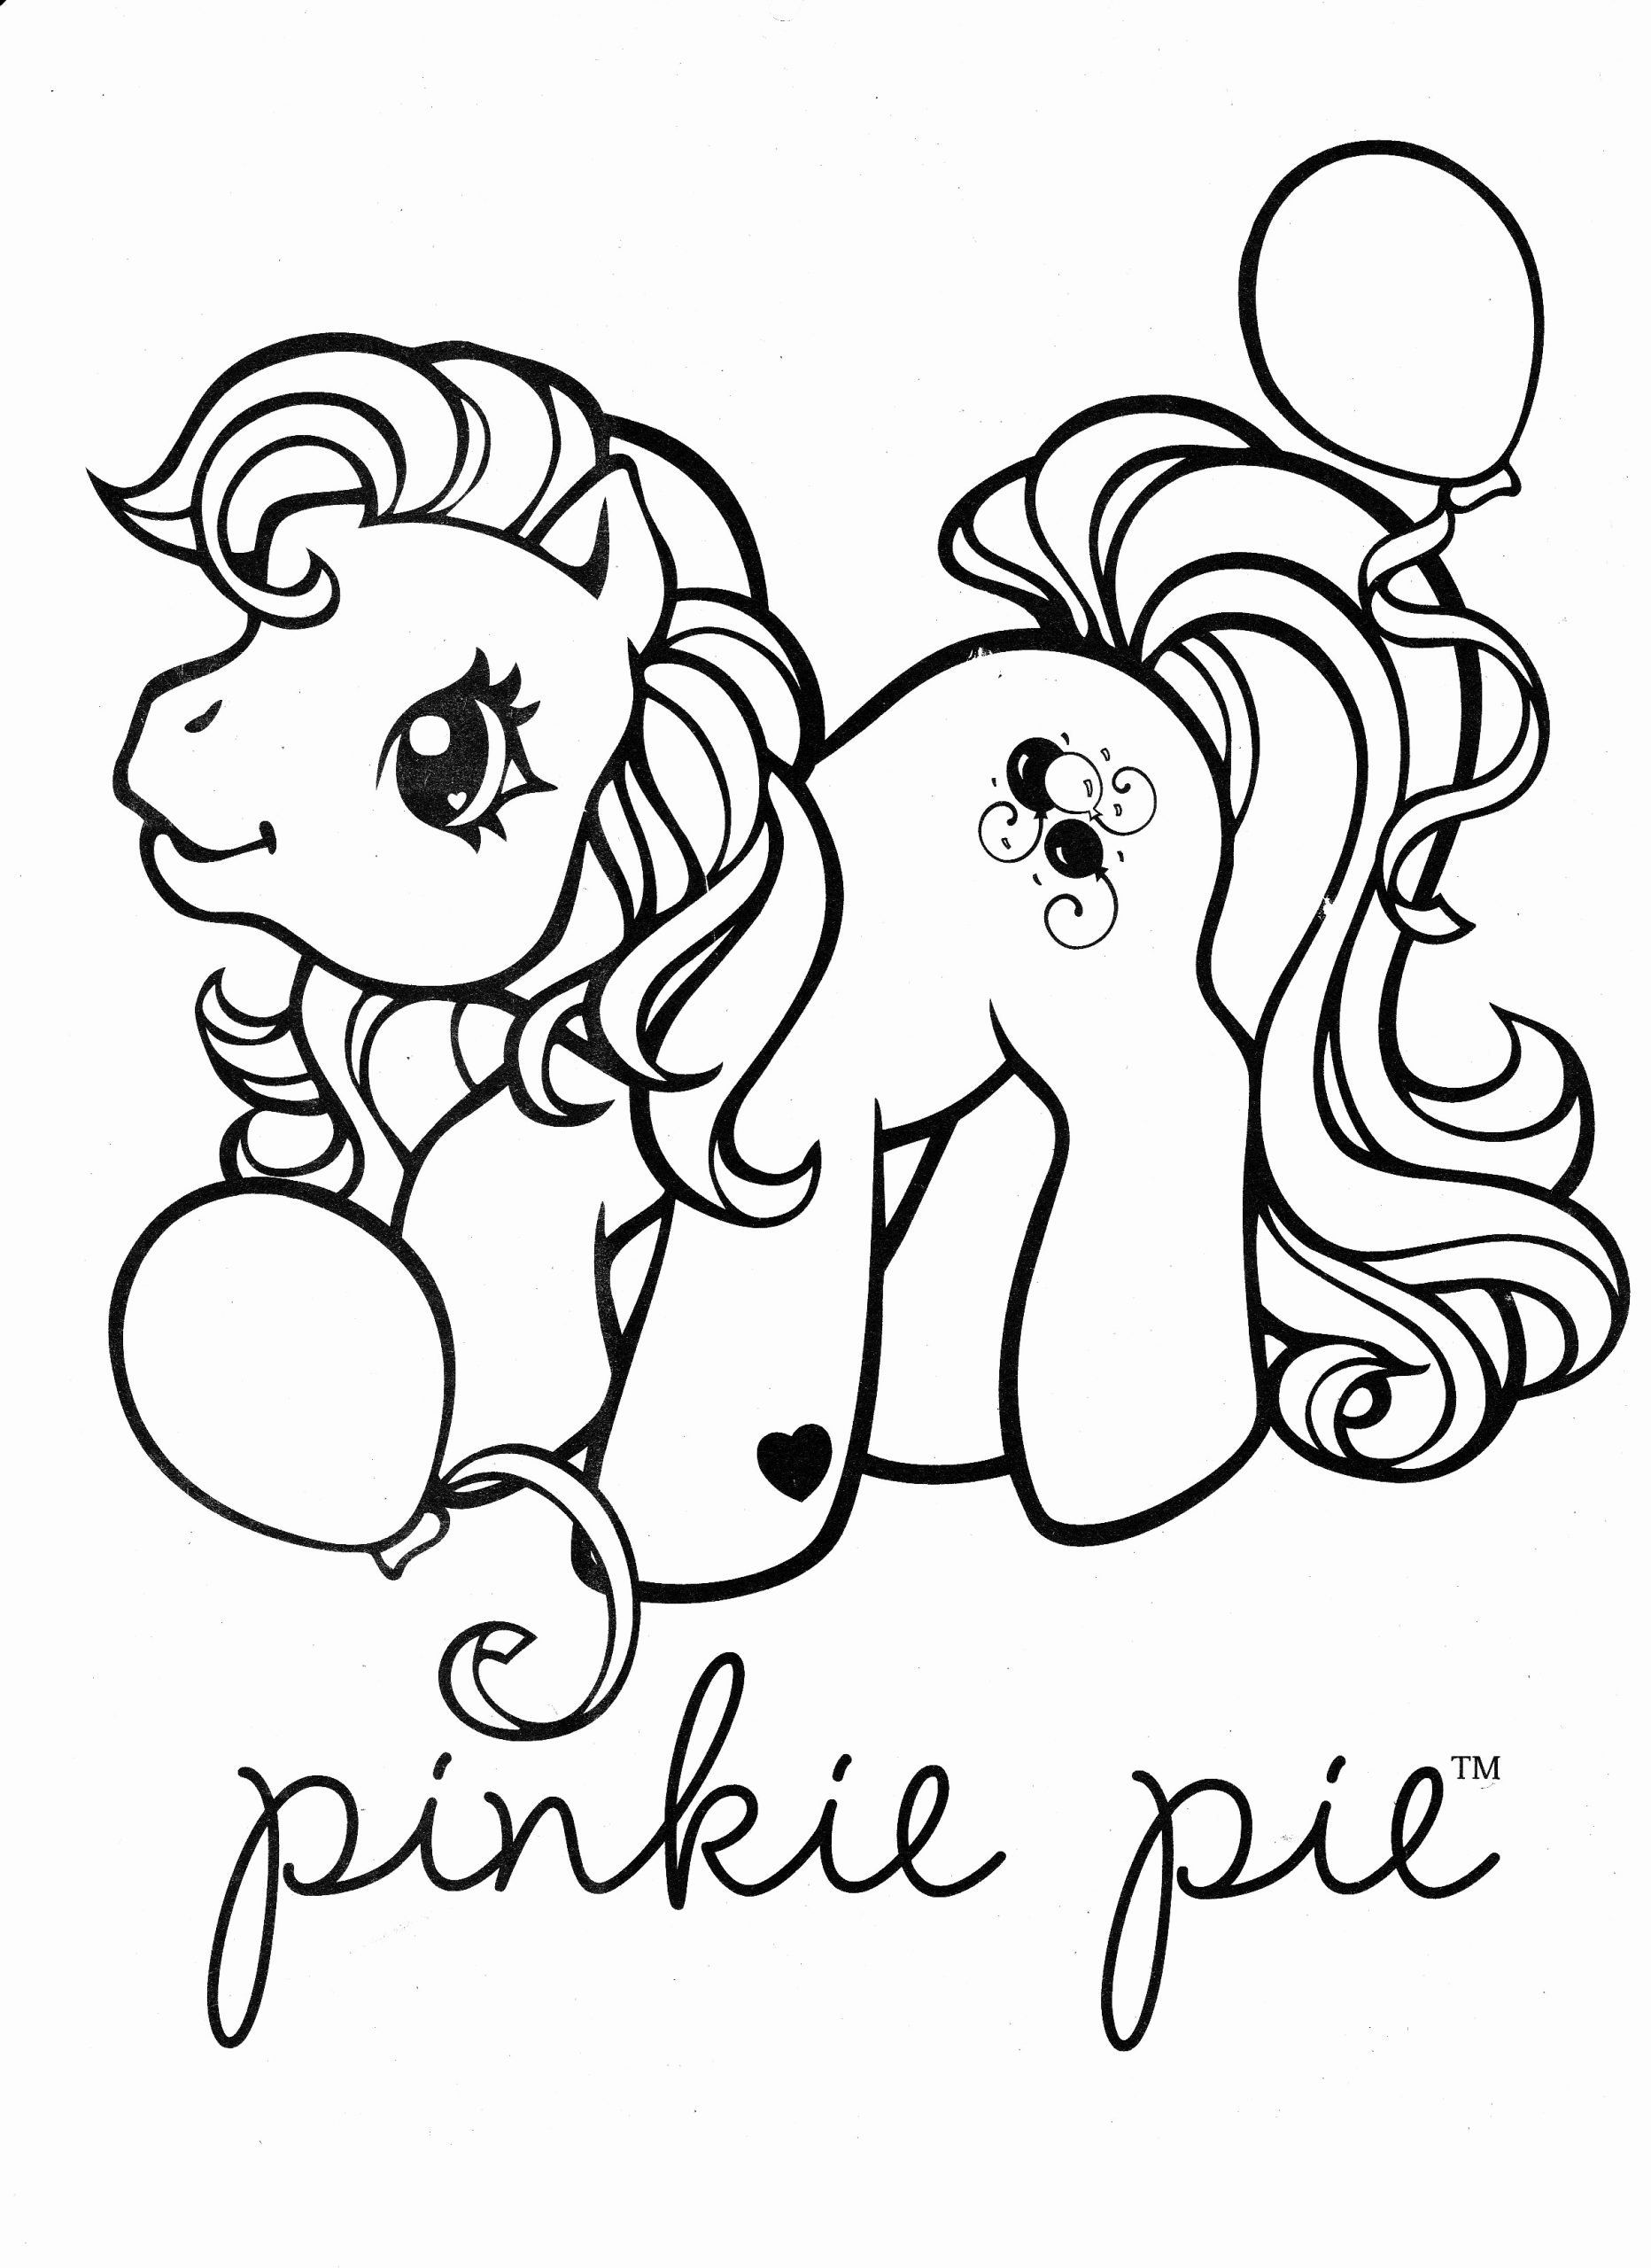 Pinkie Pie Coloring Page : pinkie, coloring, Pinkie, Coloring, Lovely, Little, Coloring,, Unicorn, Pages,, Horse, Pages